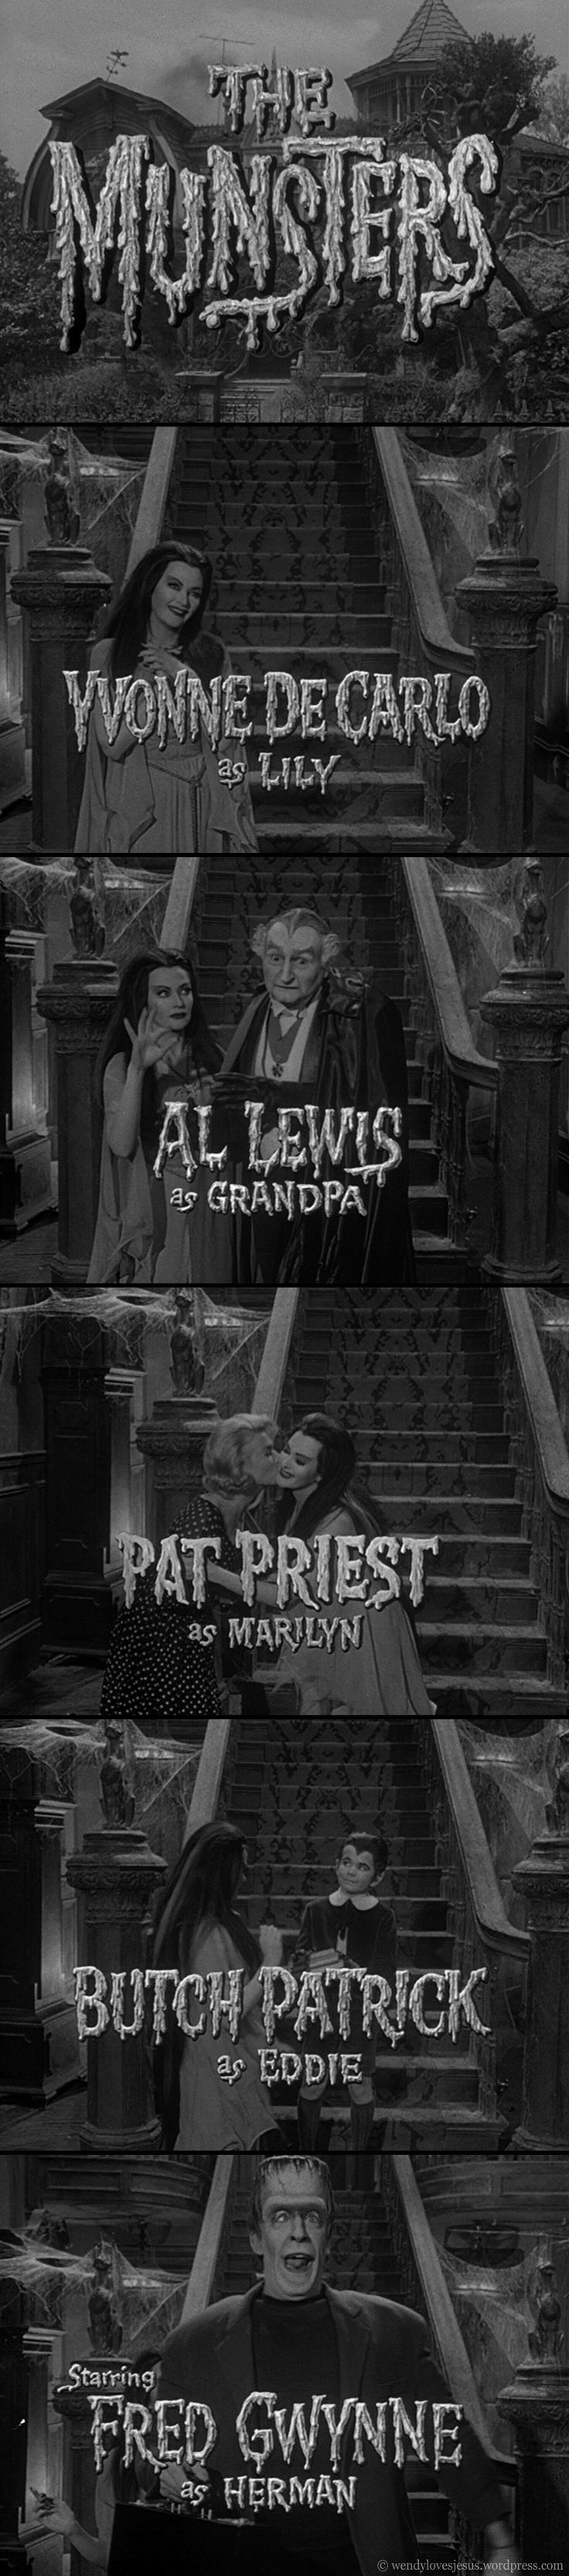 """The Munsters"" Opening Credits"